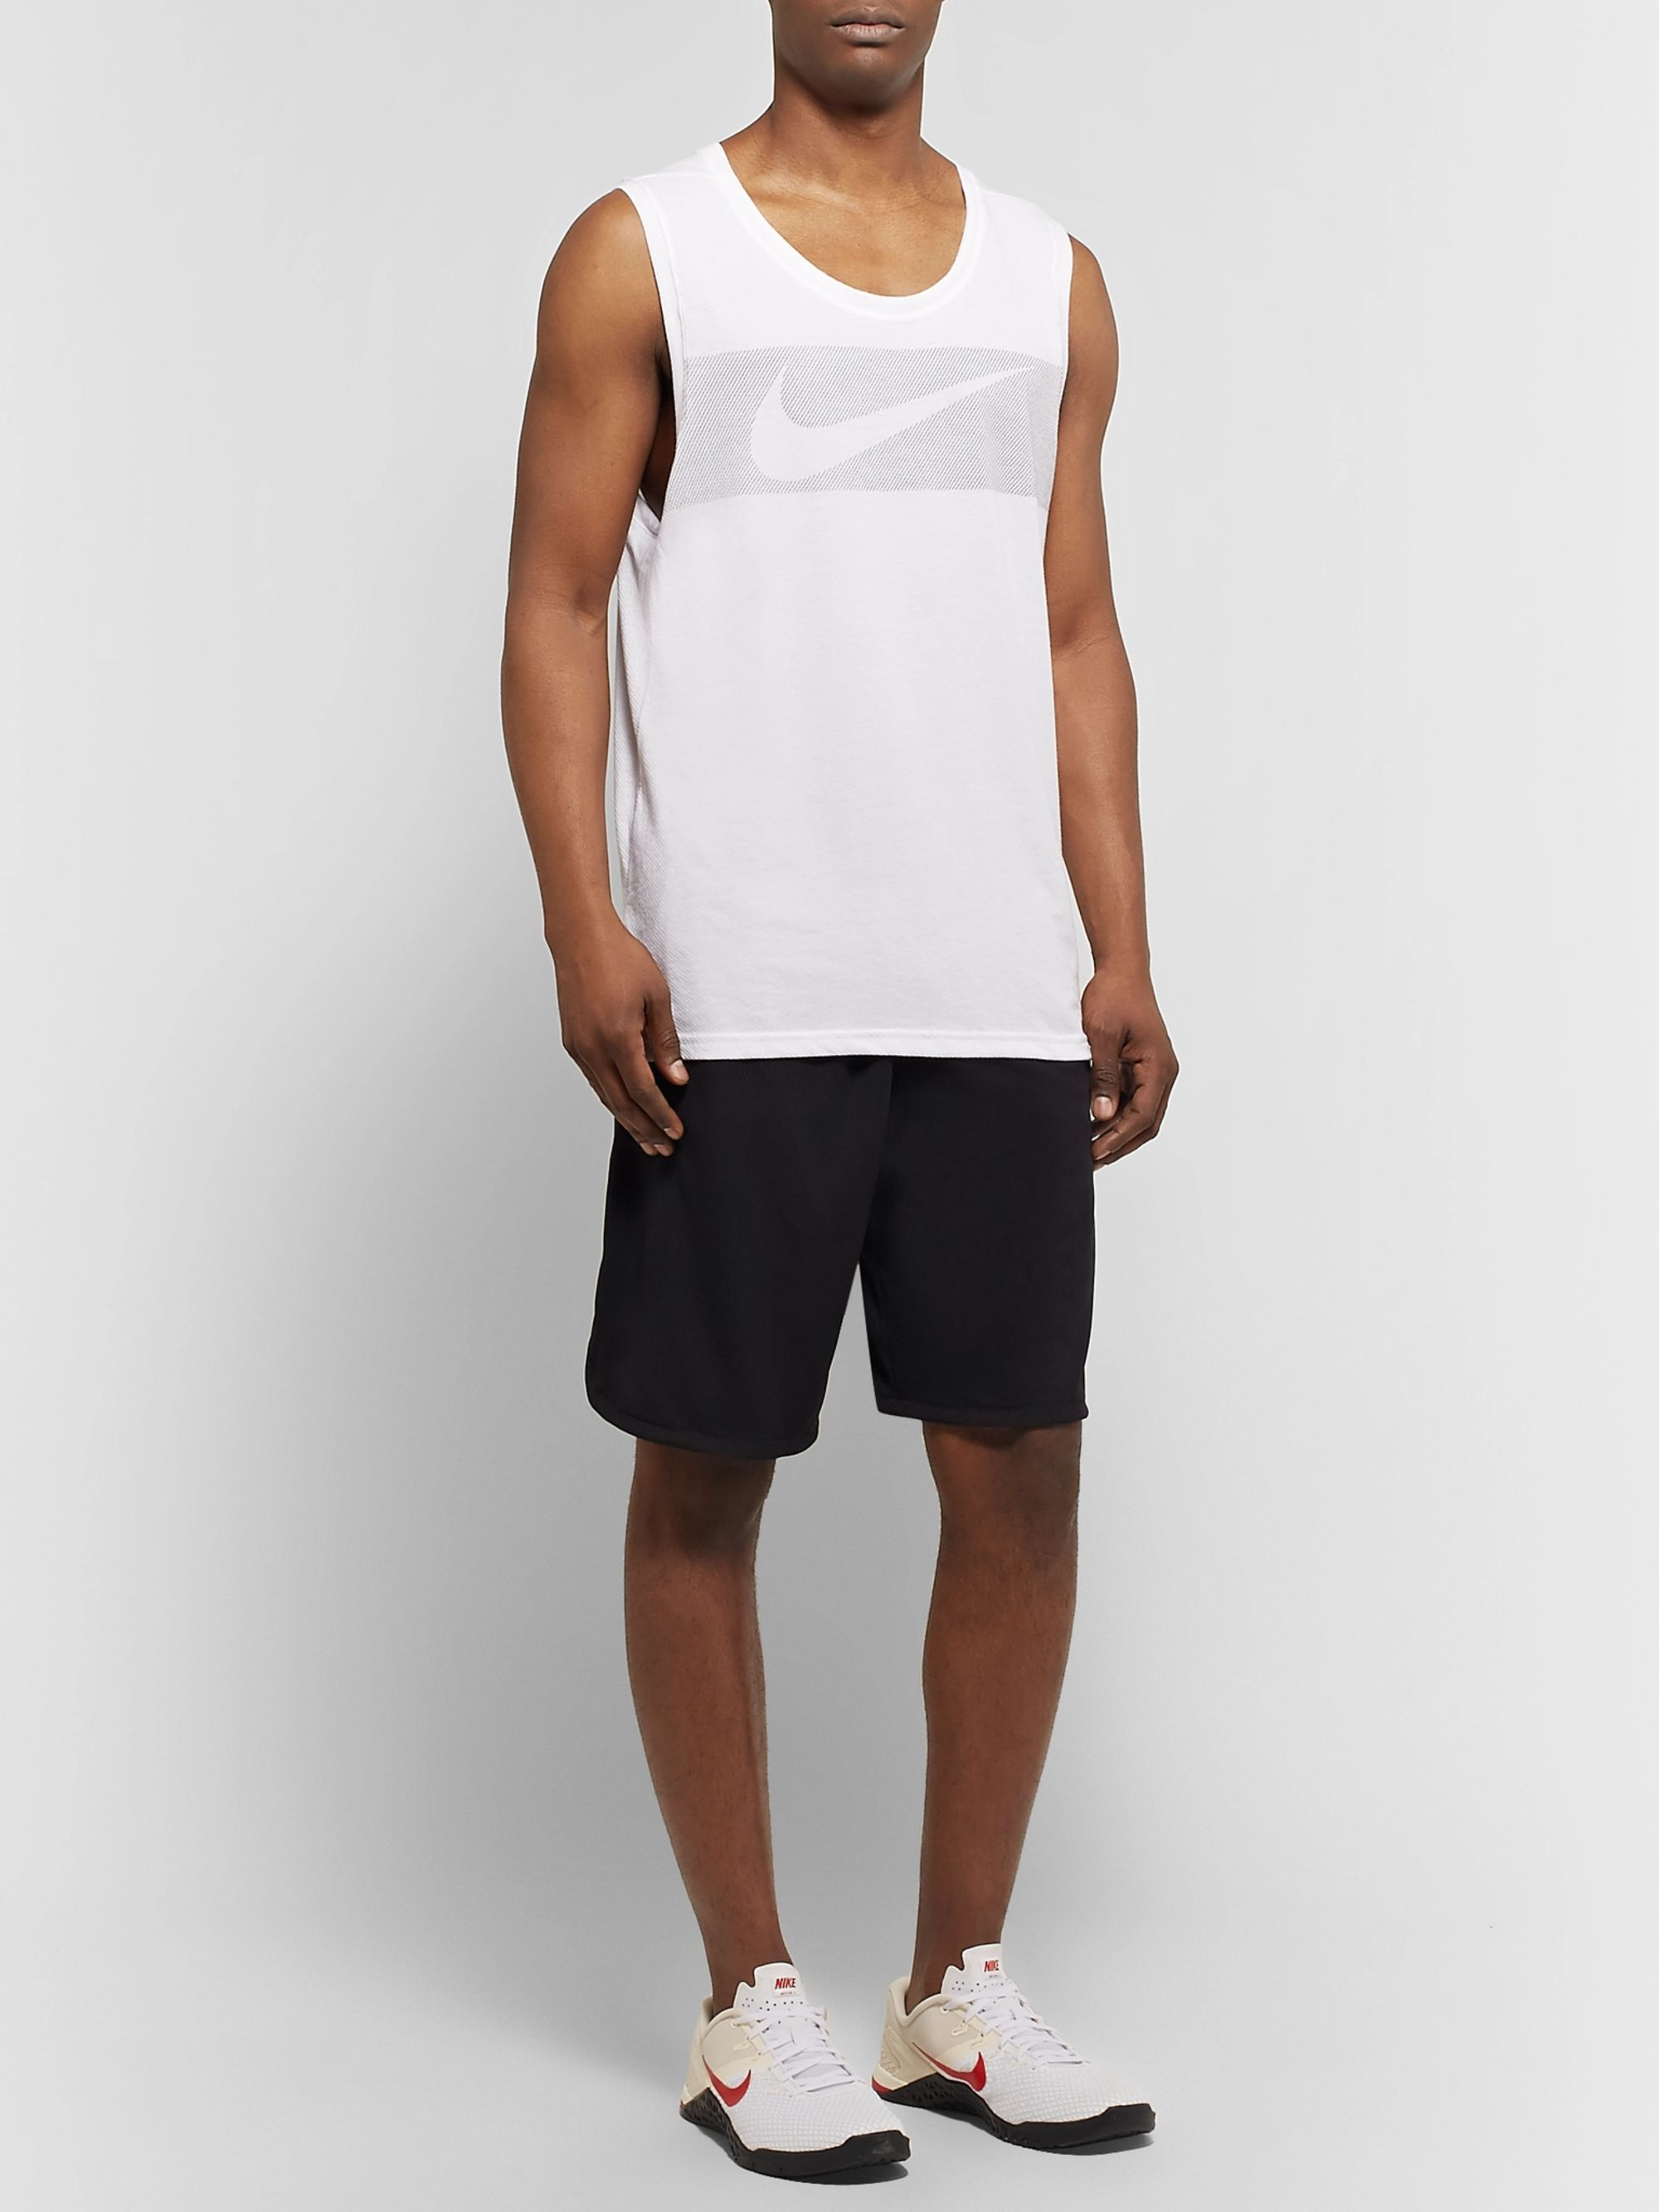 Nike Training Breathe Hyper Dry Dri-FIT Tank Top